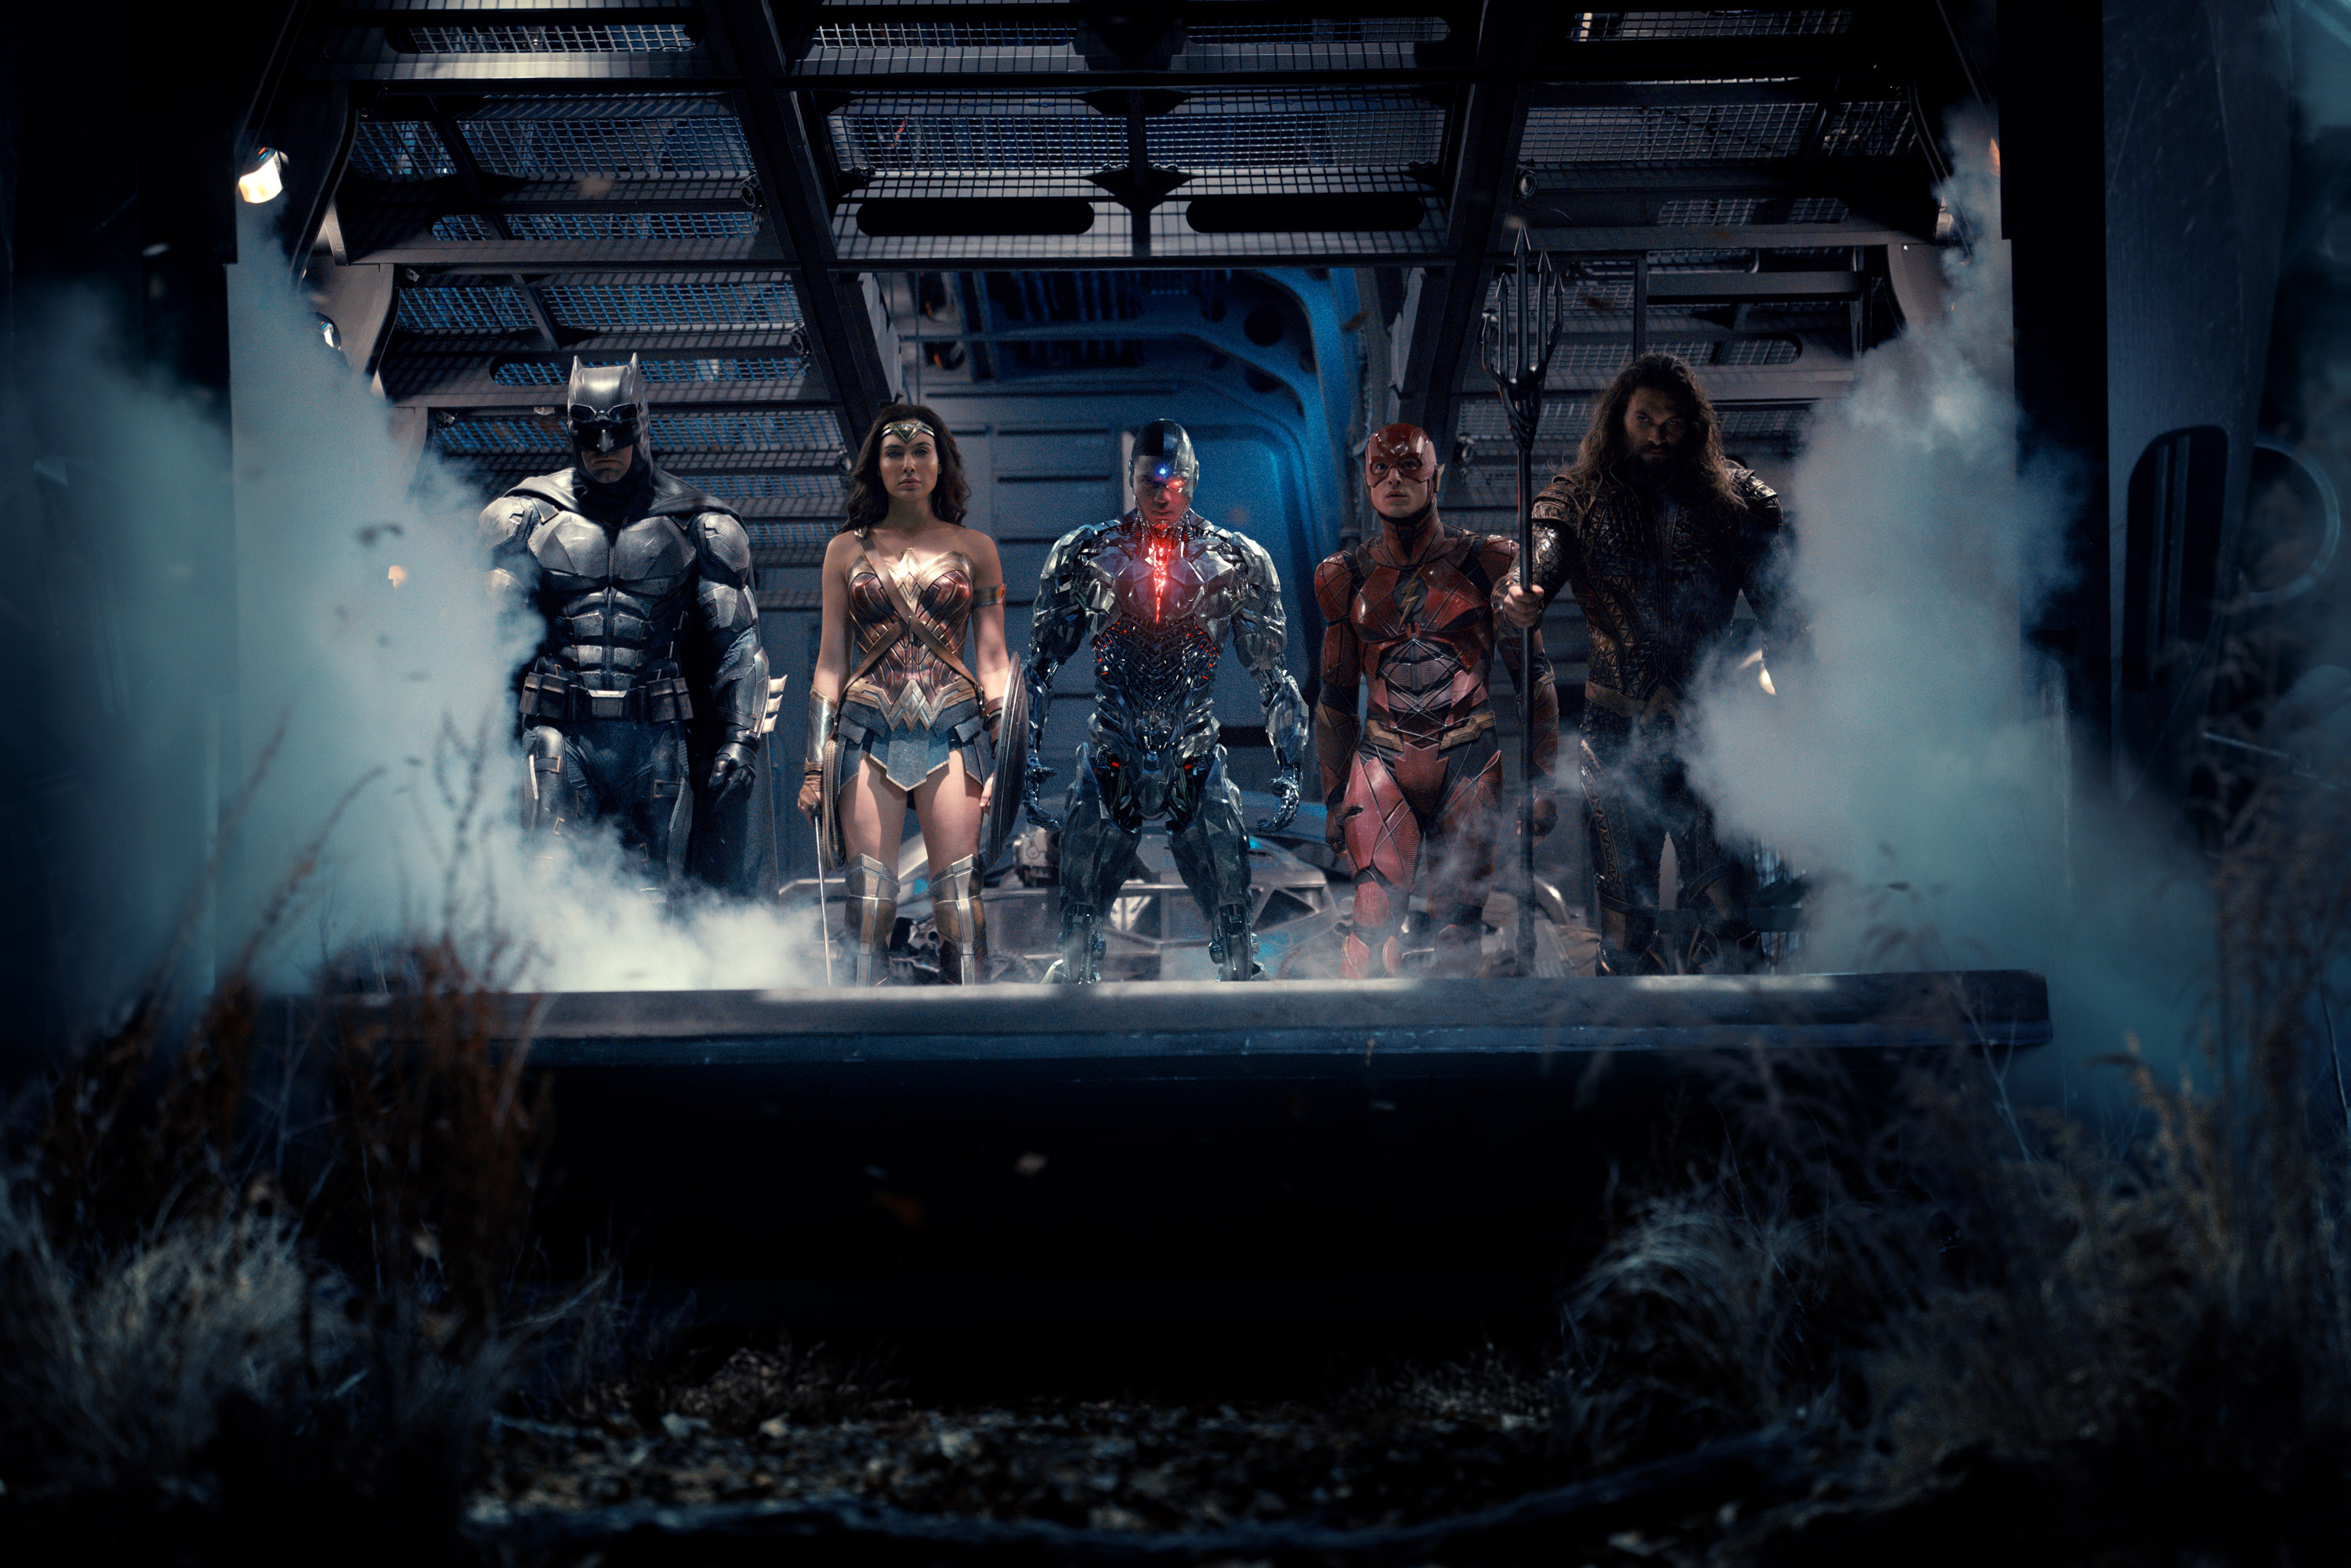 Here's a Better Look at That Brand-New Justice League Image